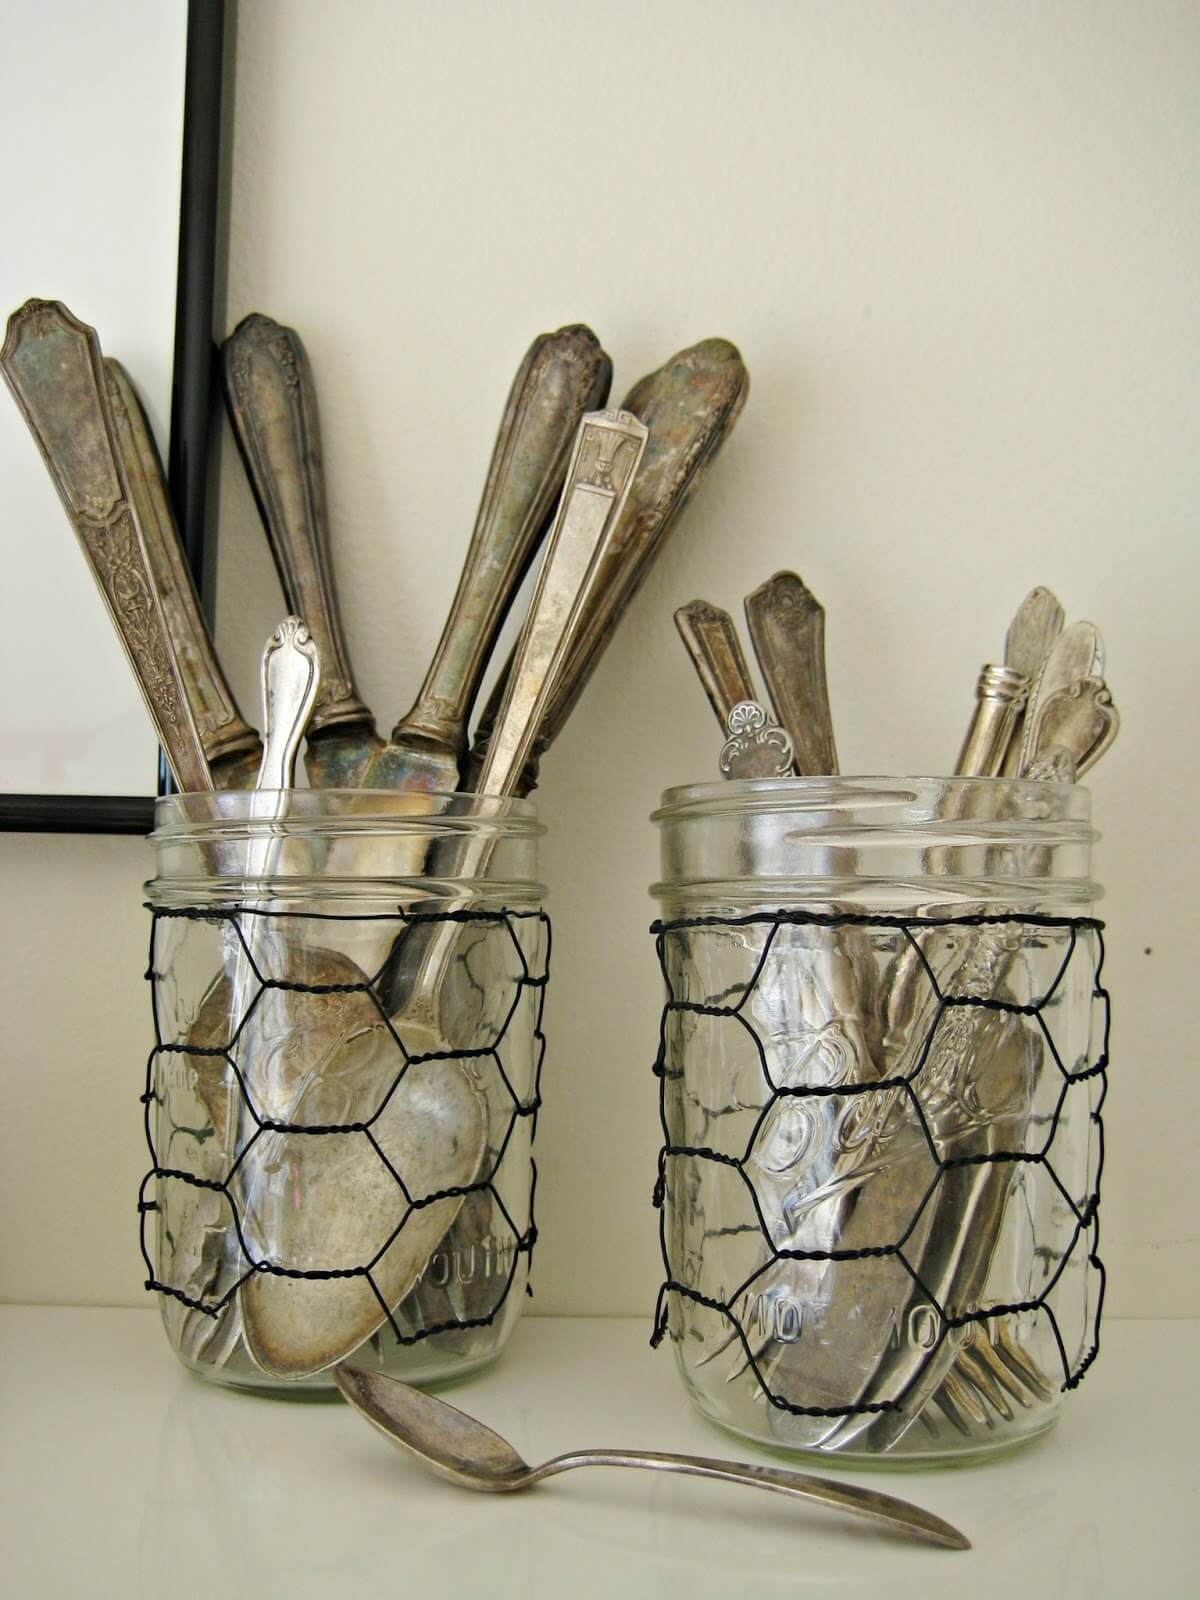 Chicken wired Utensil Holders for Your Kitchen